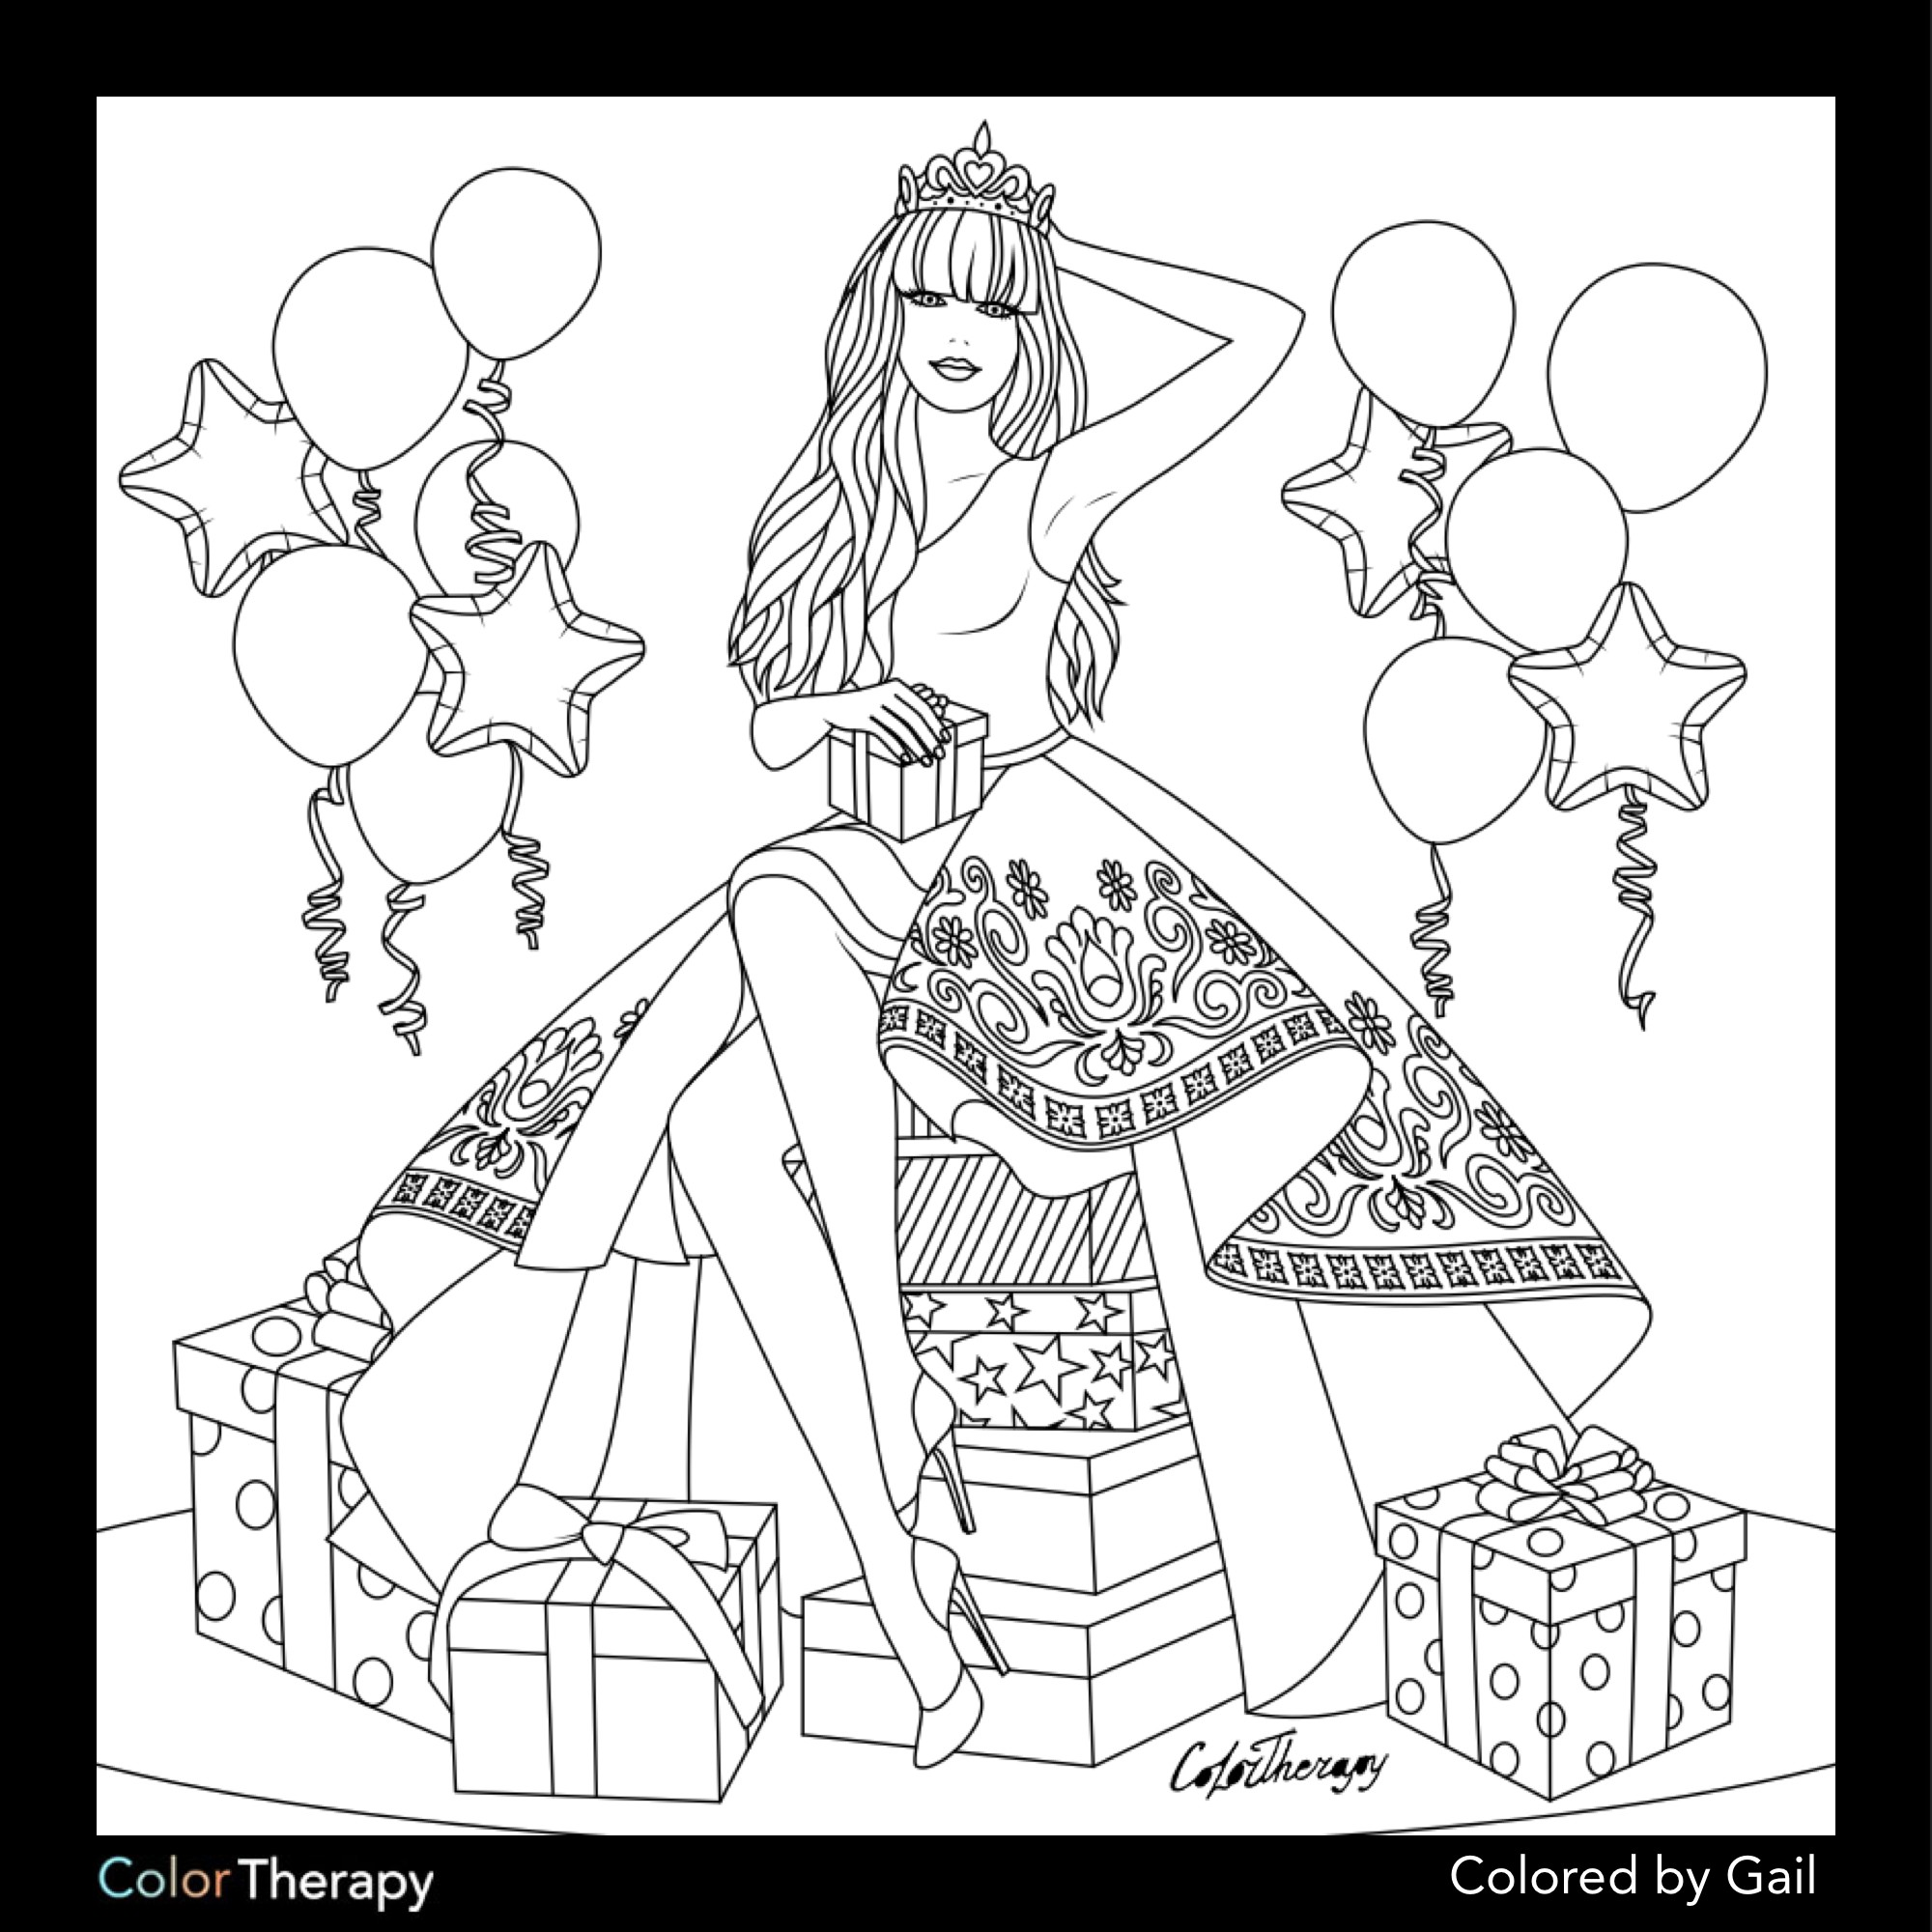 2000x2000 Coloring Pages App Wallpapers Lobaedesign Com Arilitv Apple